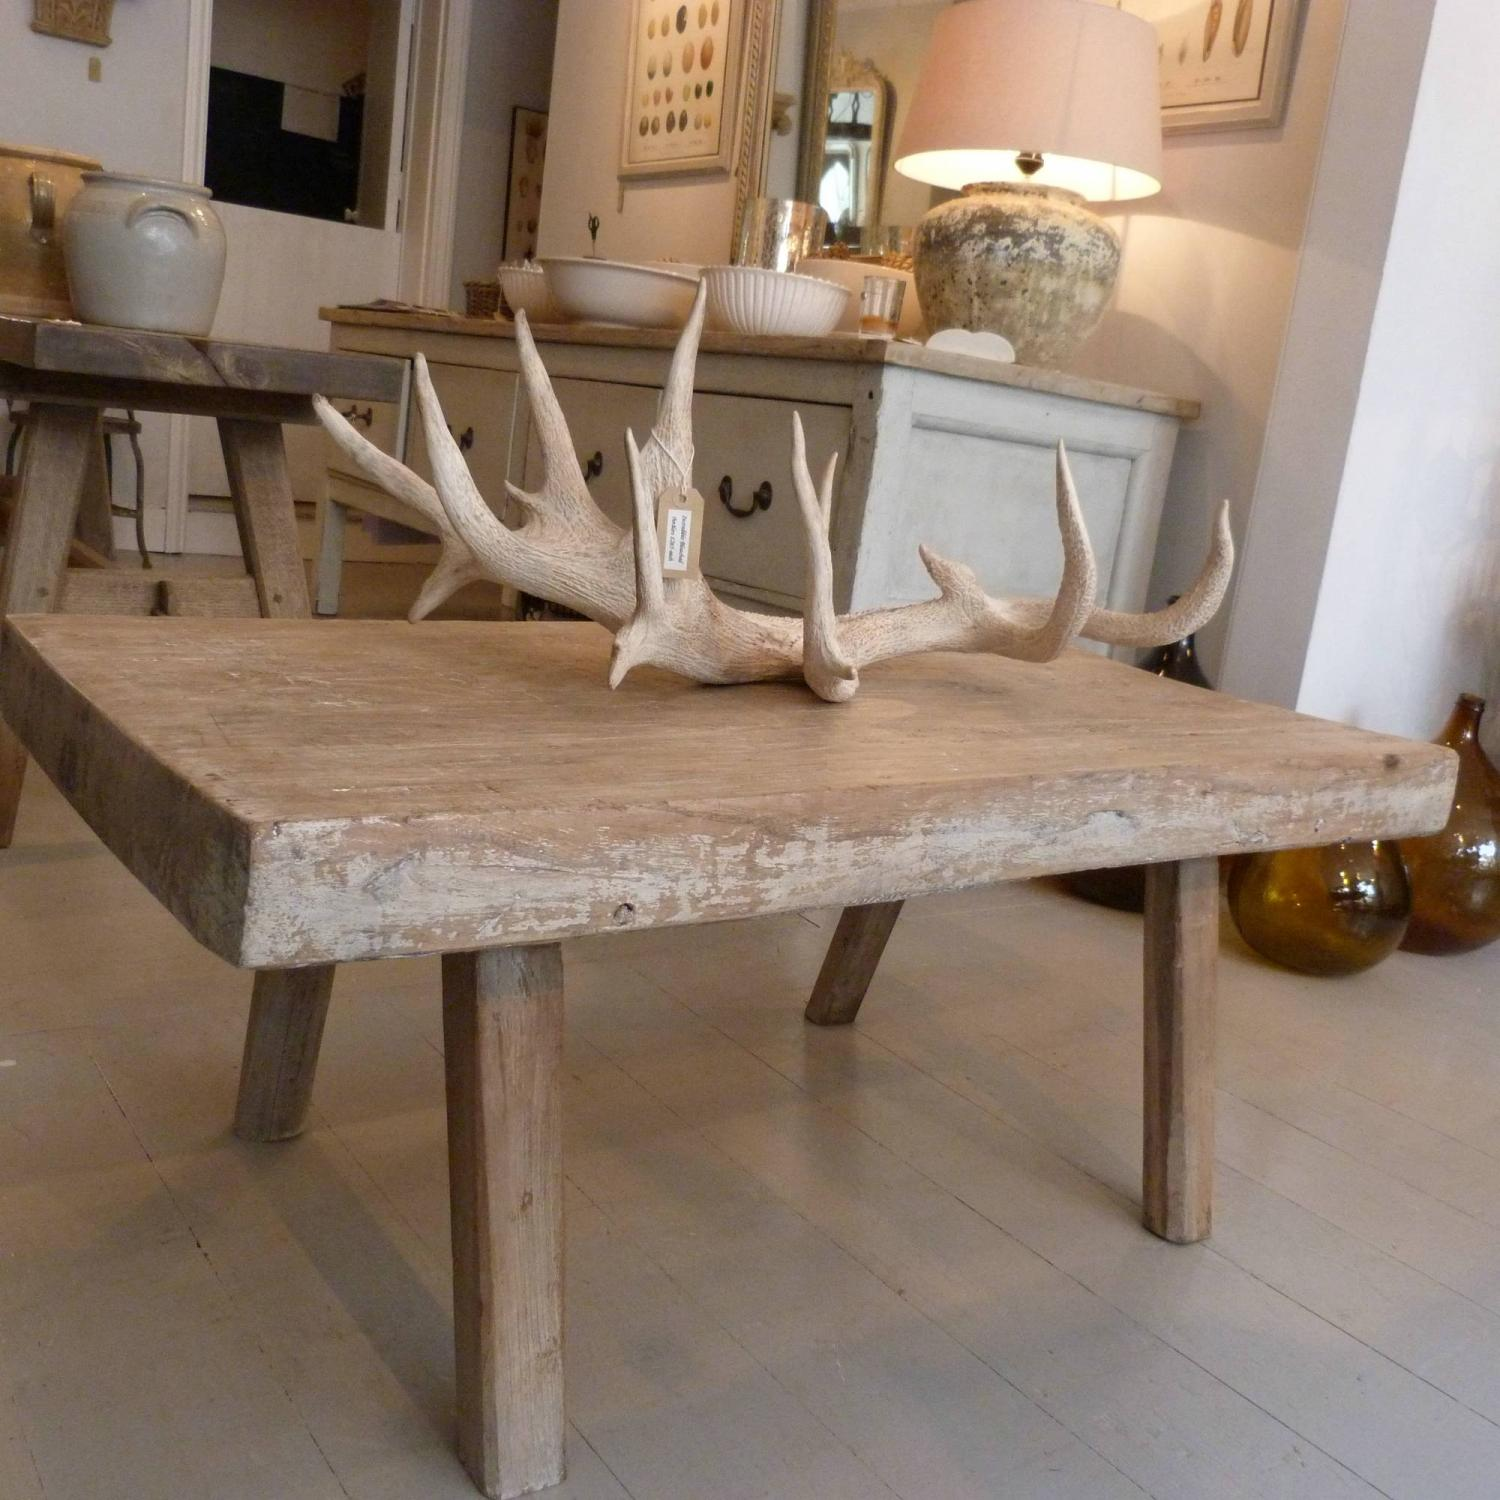 19TH CENTURY BLEACHED OAK PIG BENCH COFFEE TABLE